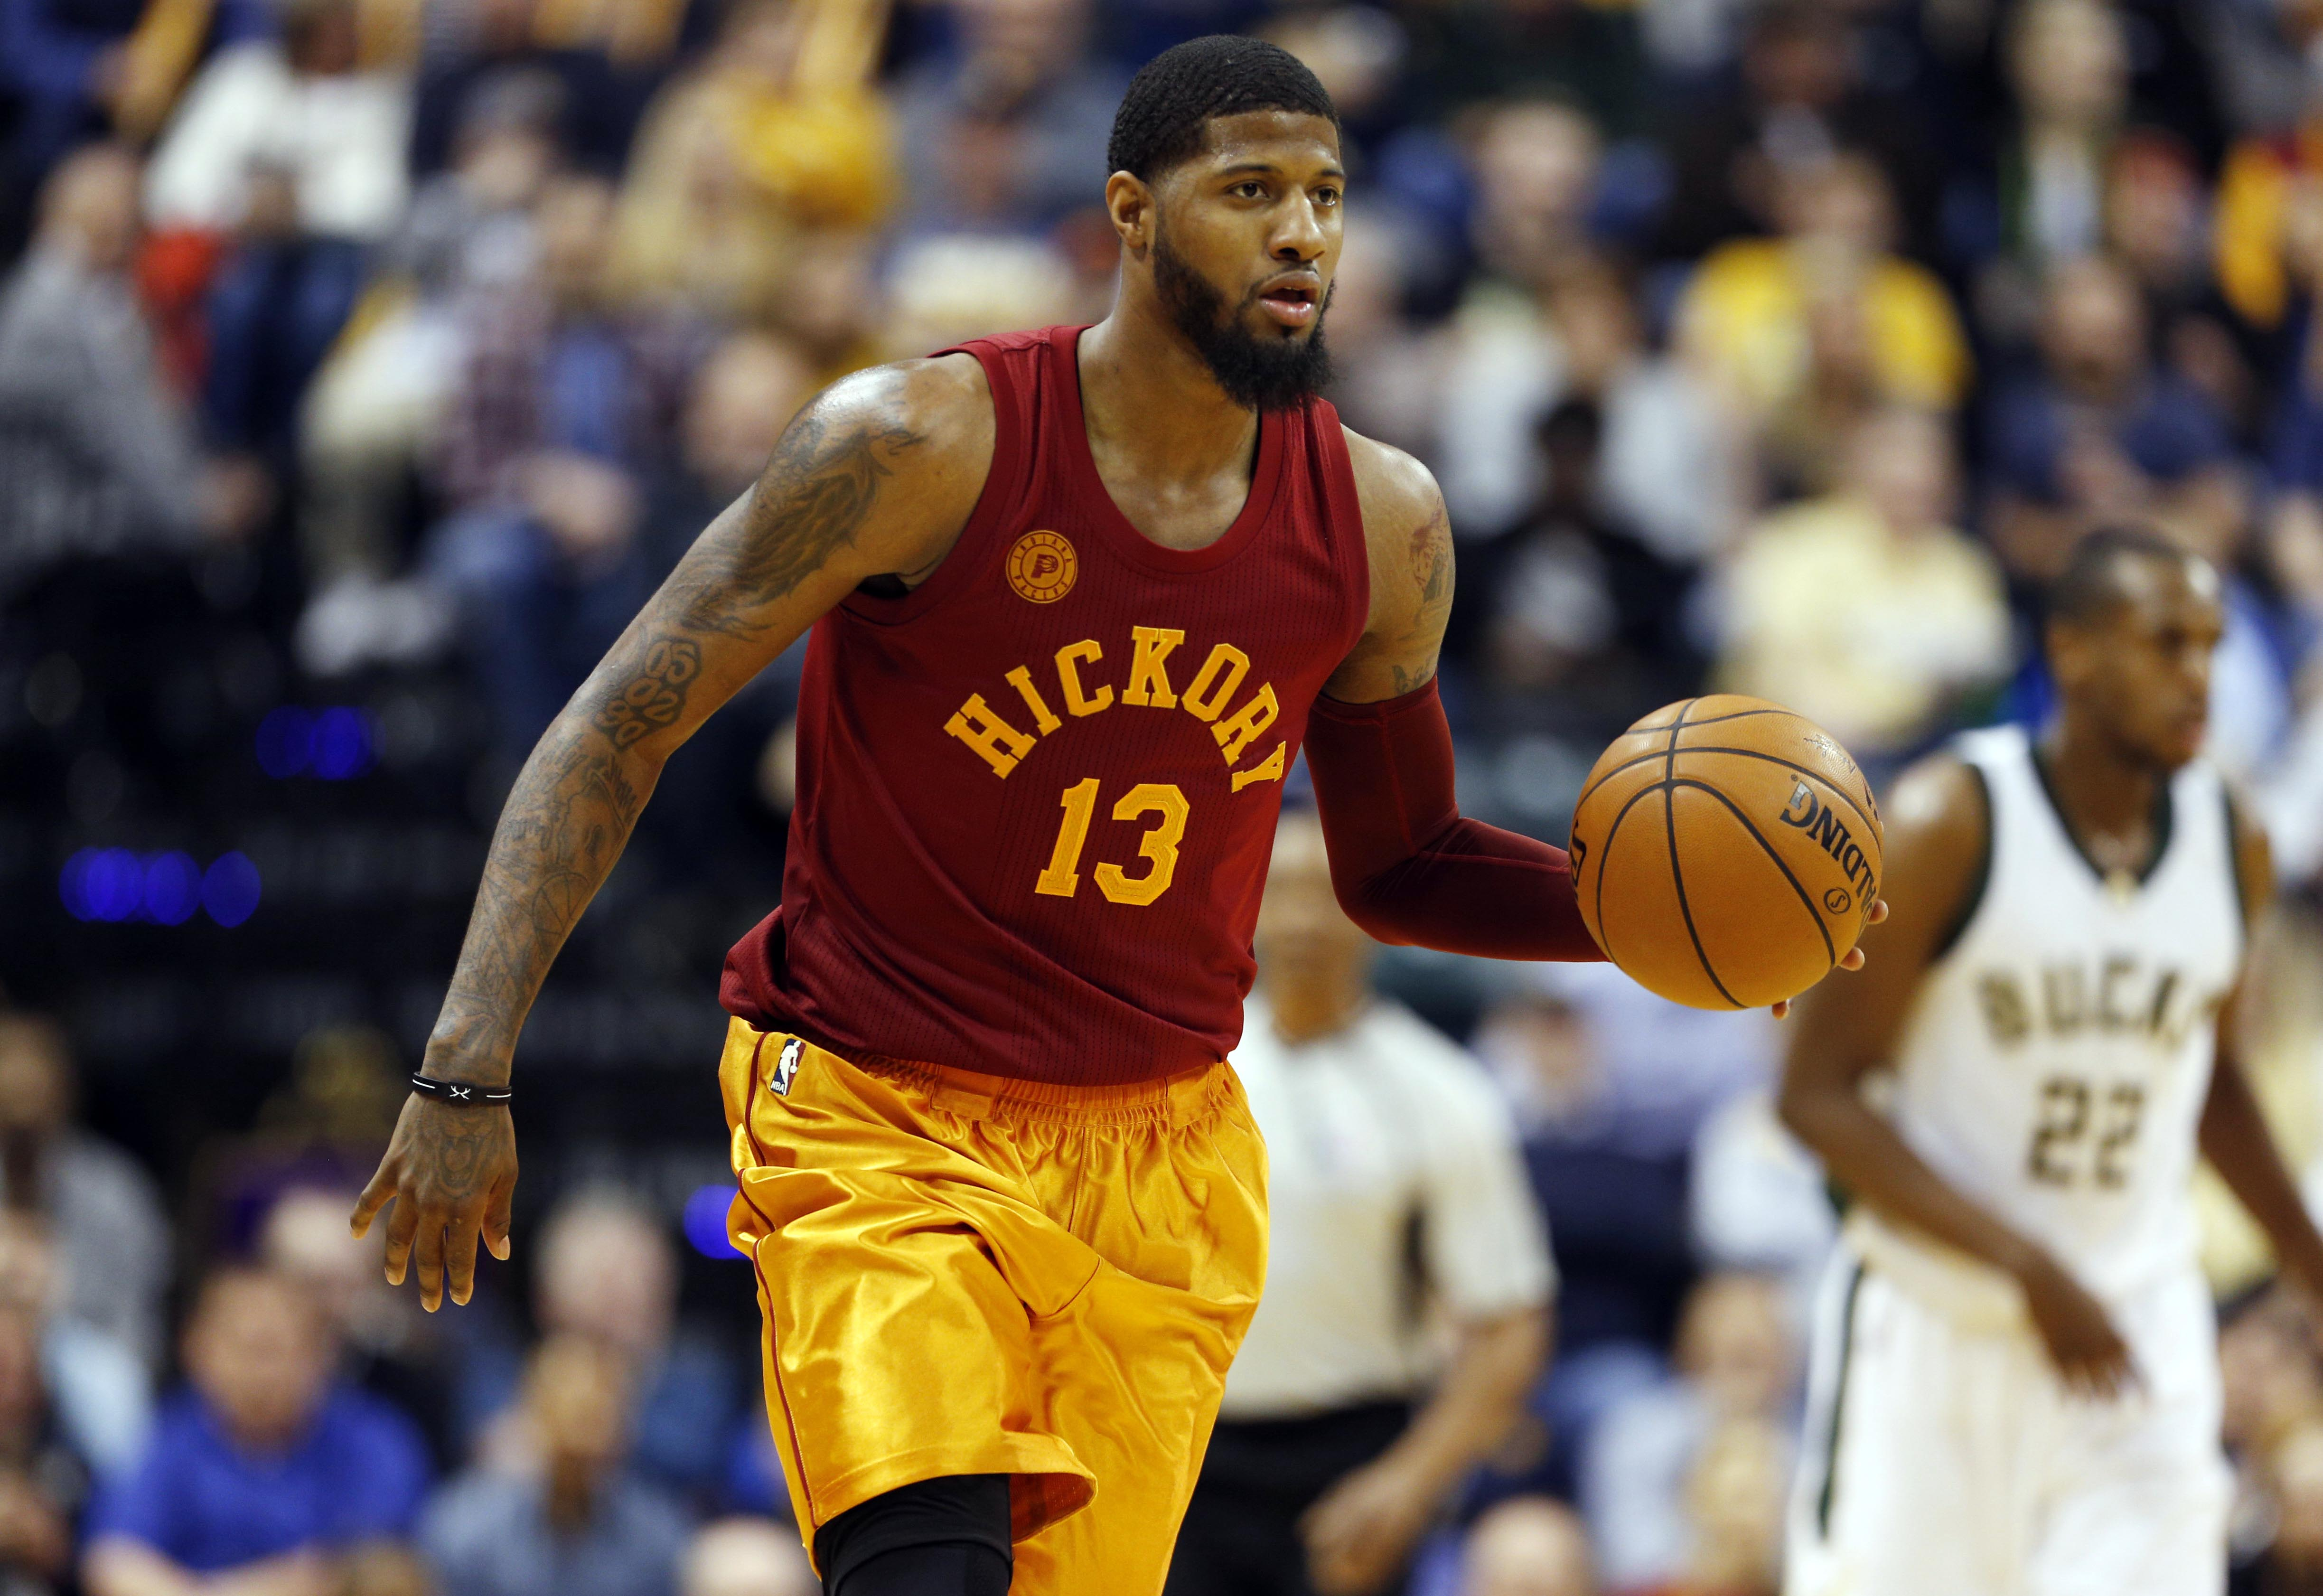 Indiana Pacers: The Pros And Cons Of Trading Paul George